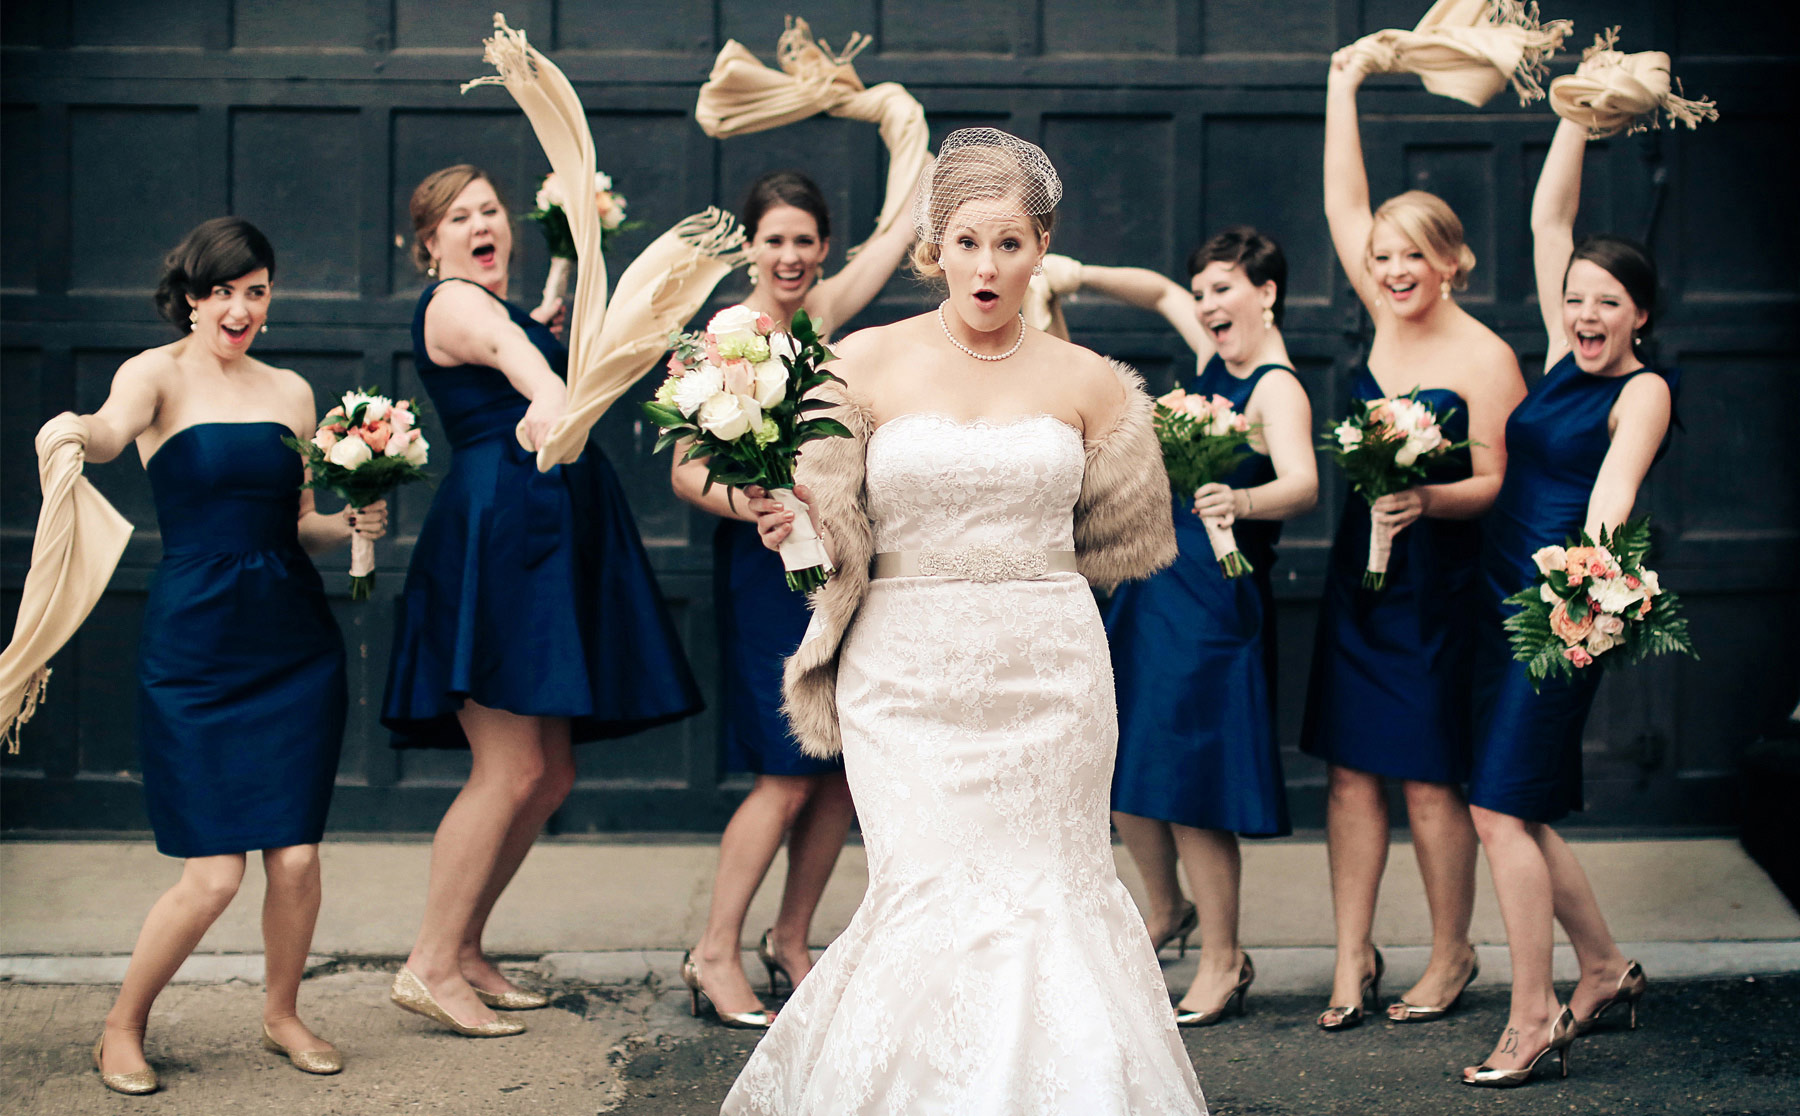 07-Minneapolis-Minnesota-Wedding-Photography-Aria-Bridesmaids-Downtown-Industrial-Heidi-and-Peter.jpg